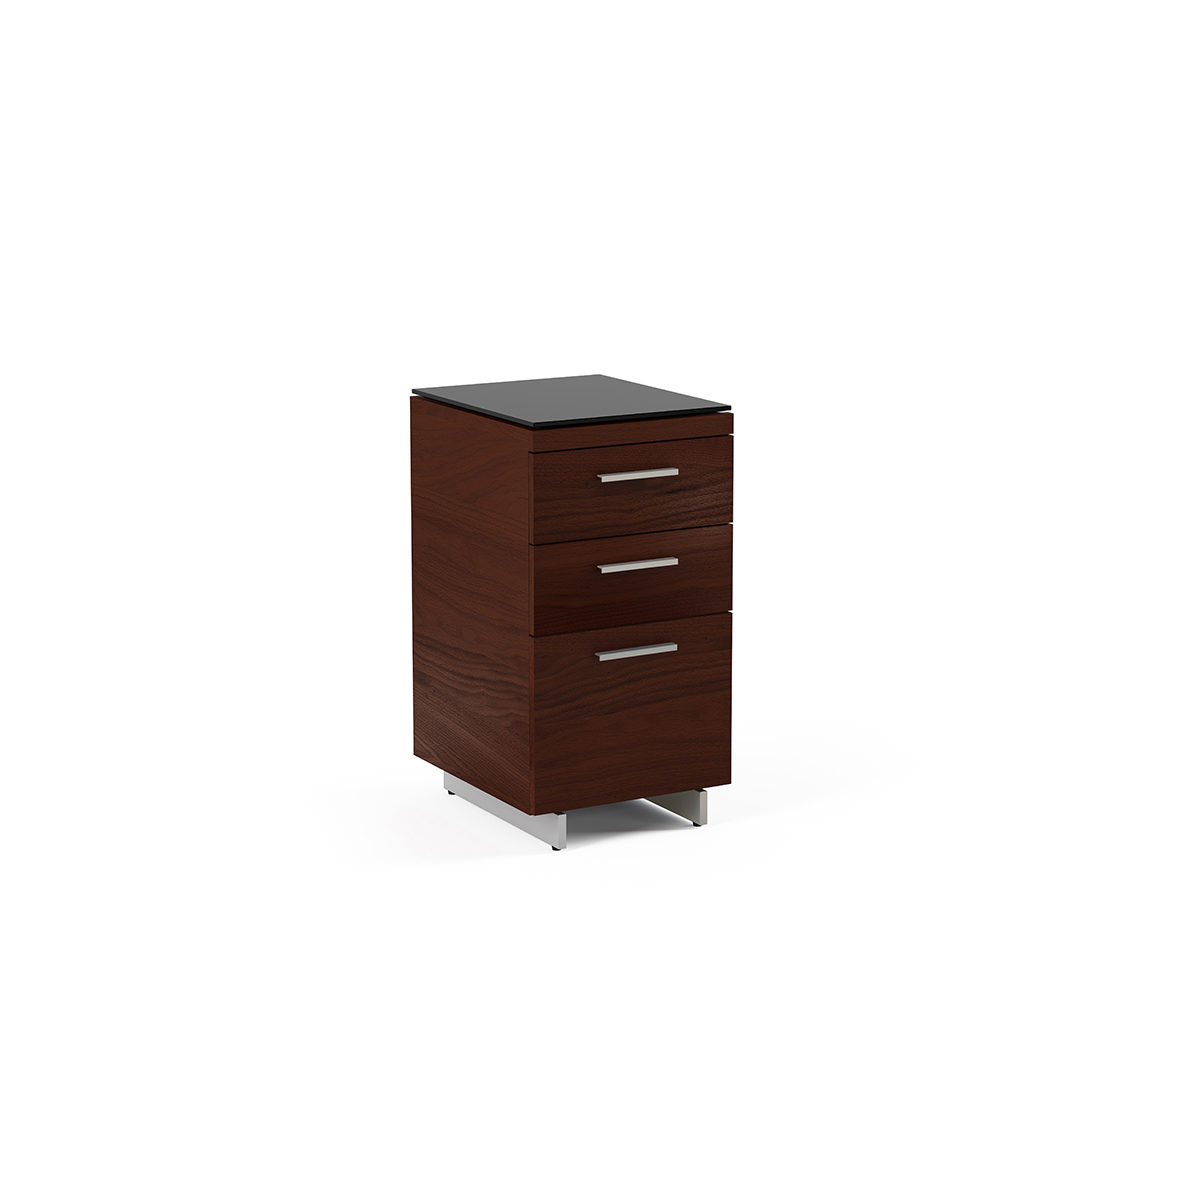 ... About Finishes. The Sequel 3 Drawer File Cabinet ...